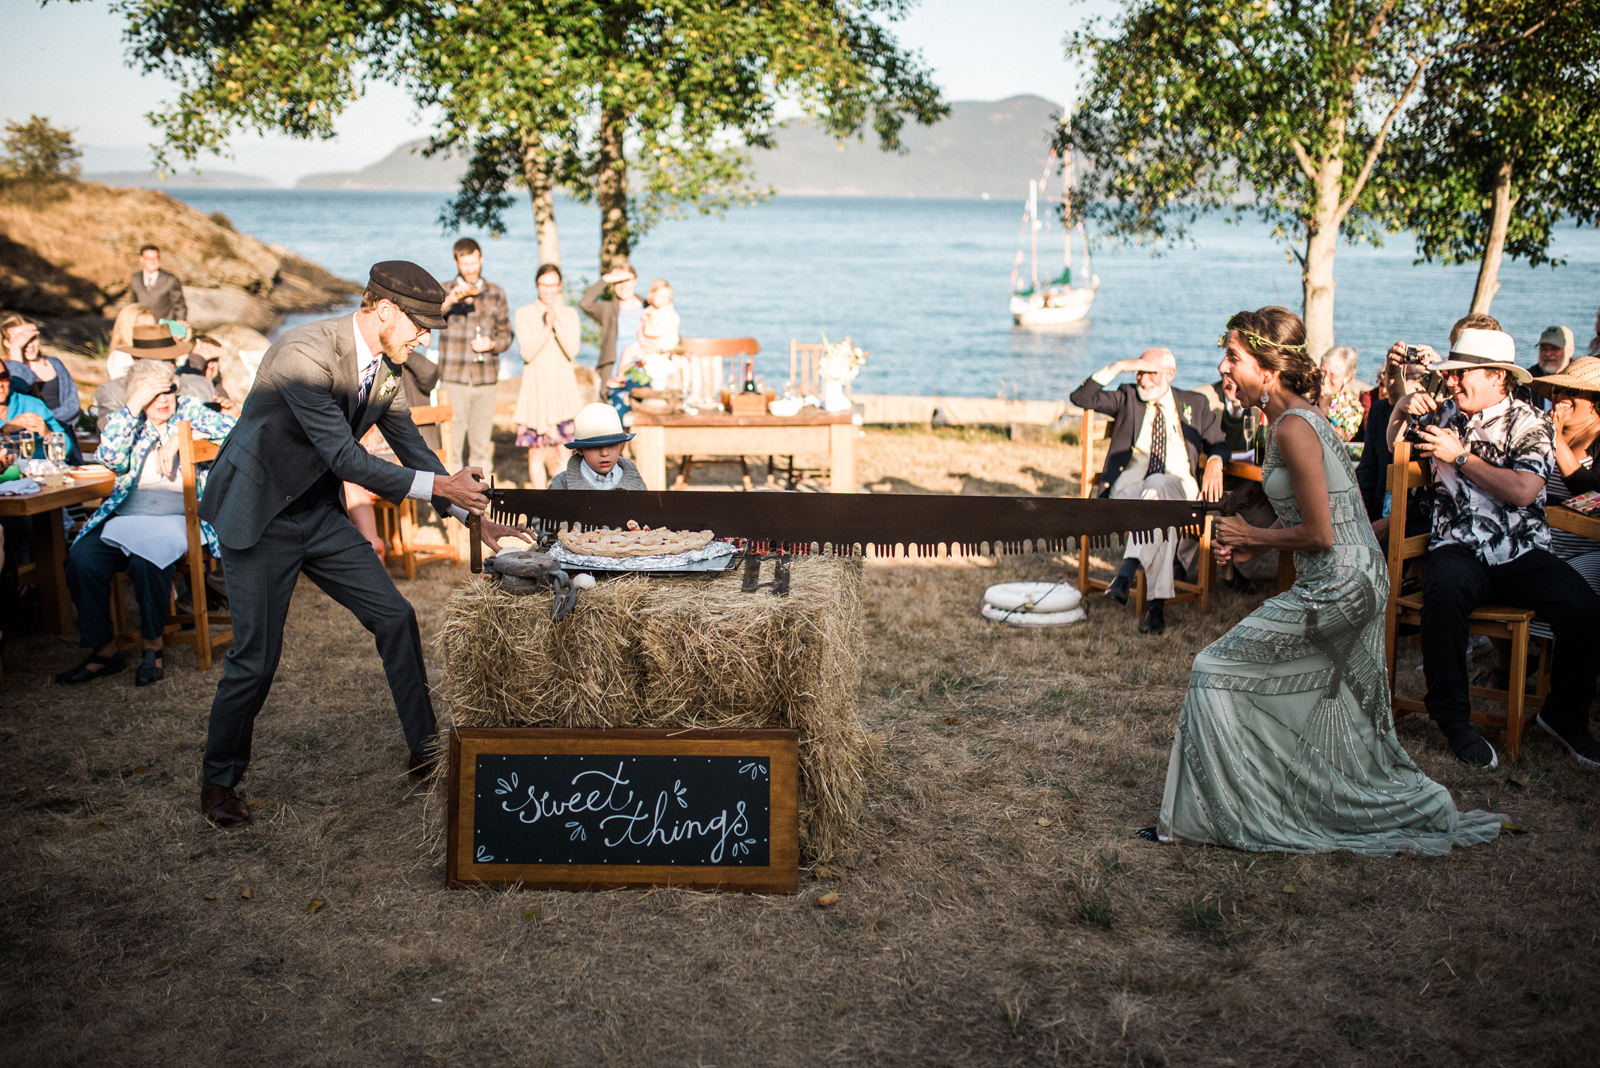 075-bride-and-groom-using-band-saw-to-cut-wedding-pie-by-orcas-island-wedding-photographer.jpg